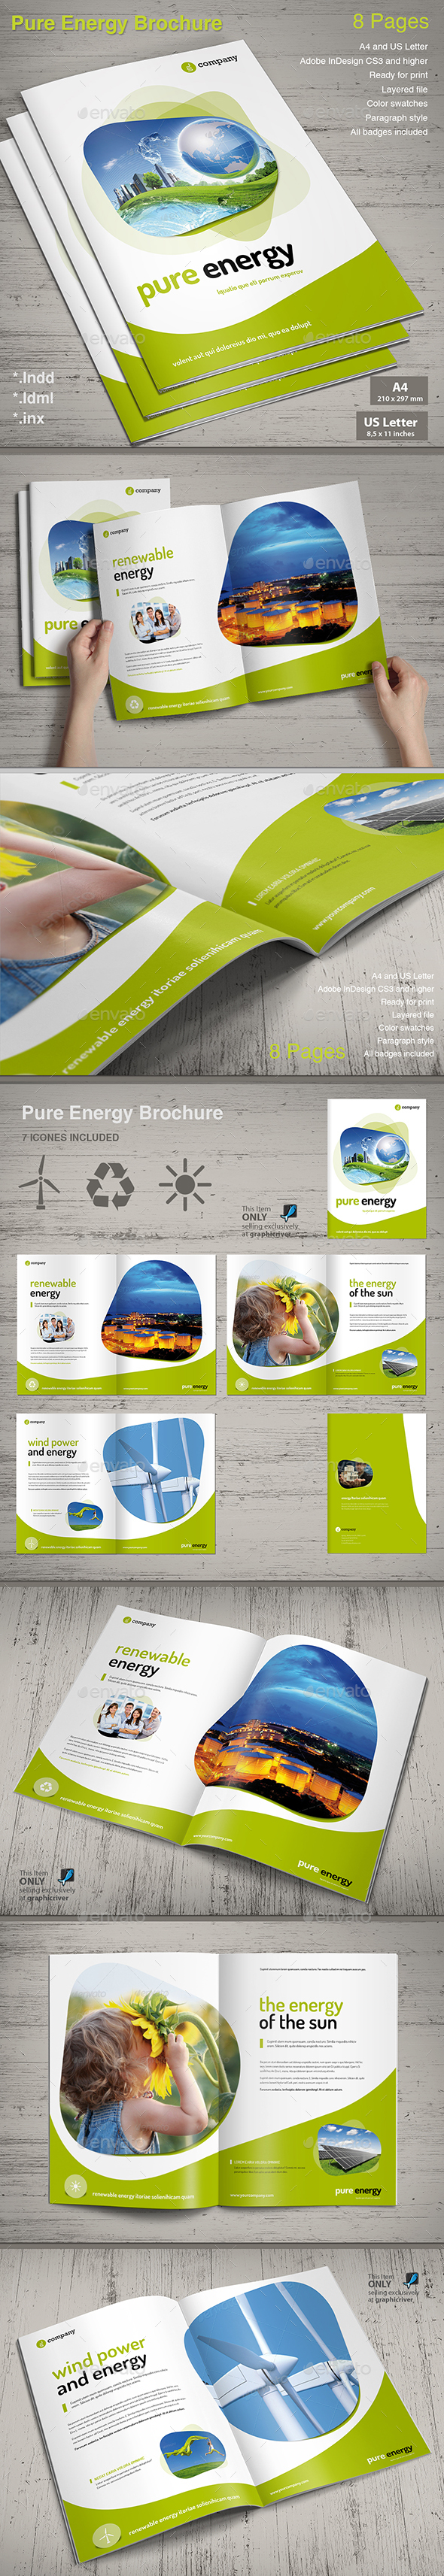 Preview pure energy brochure